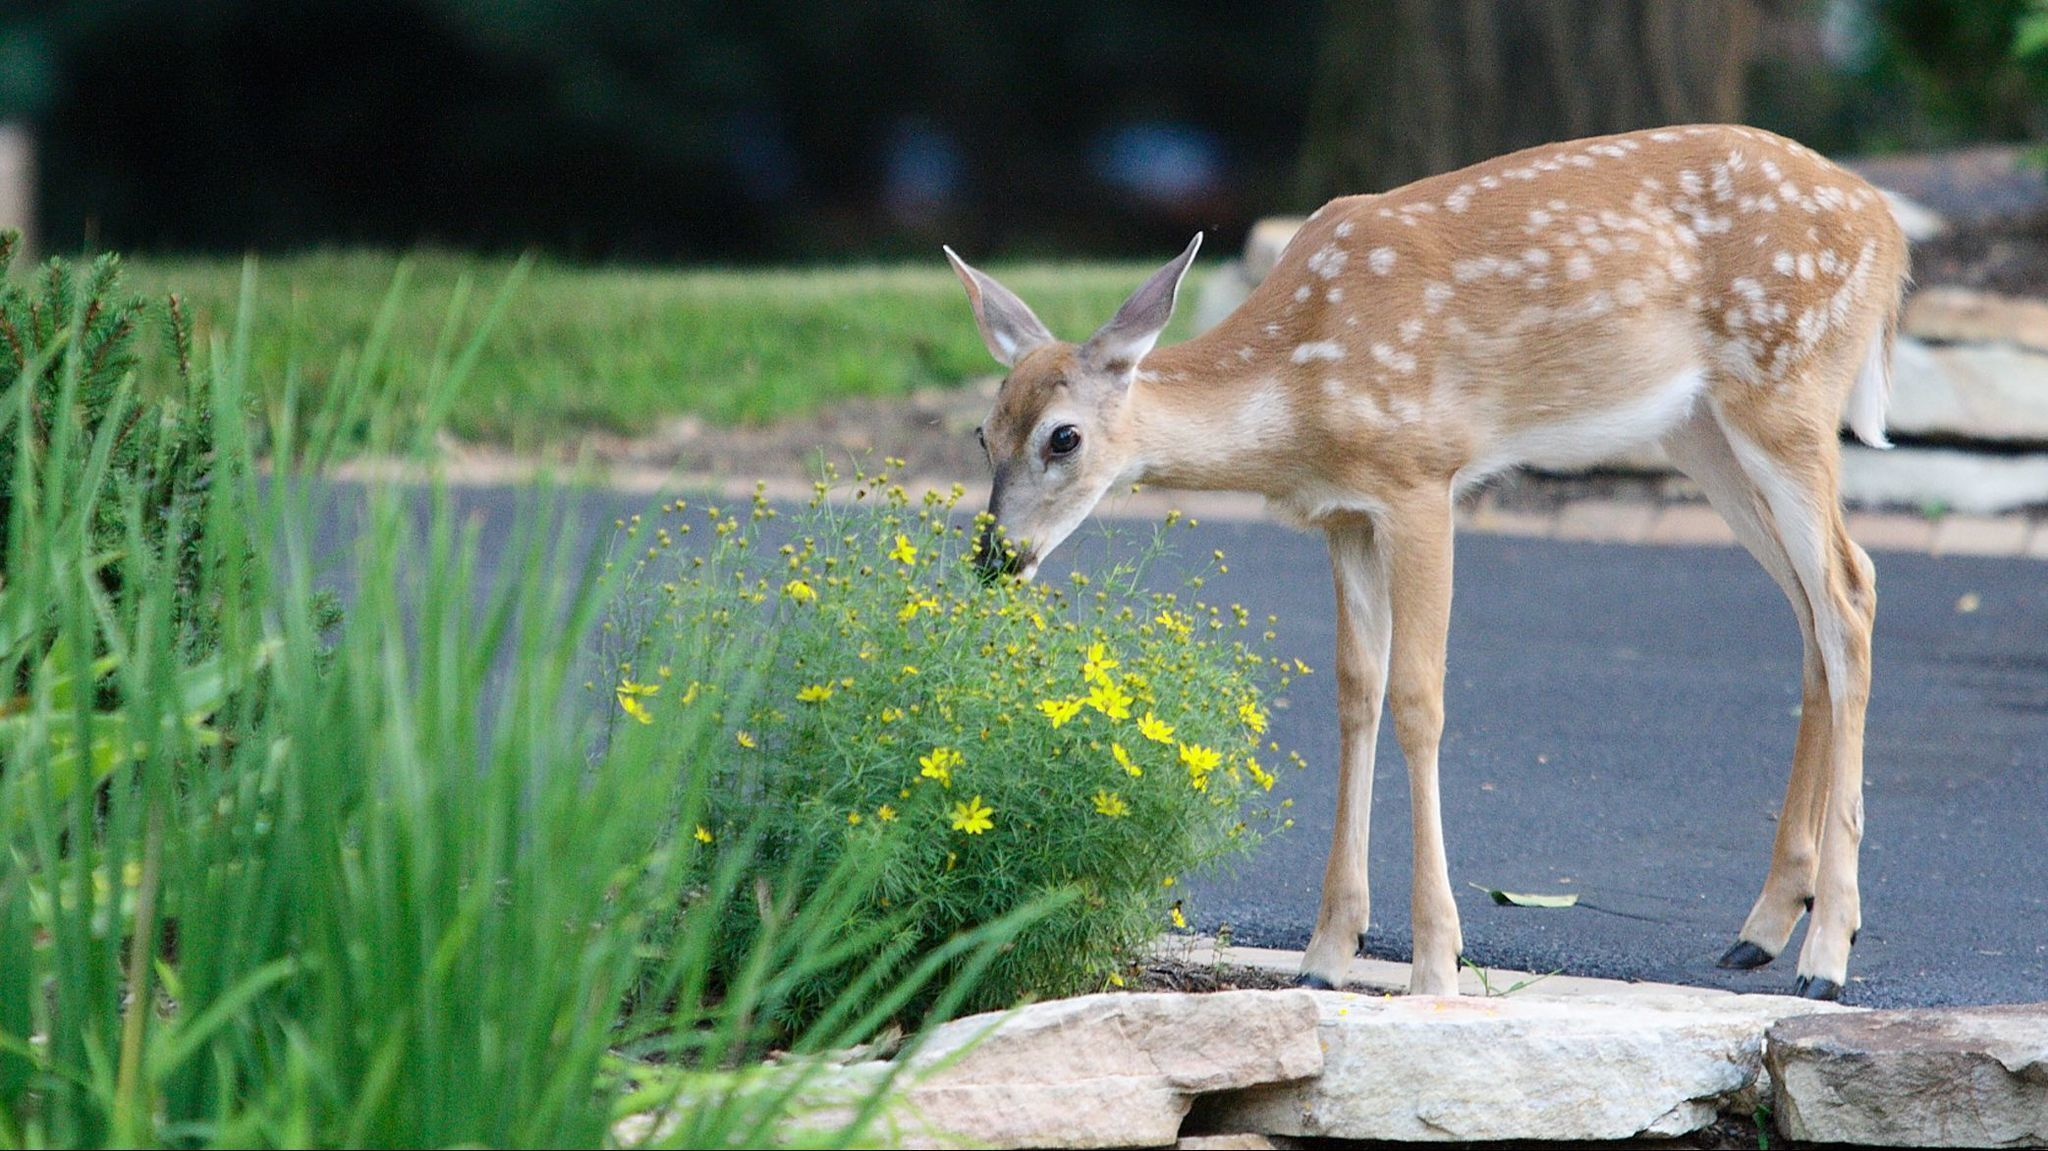 Gardening How To Make Your Own Deer Repellent For The Garden Morning Call